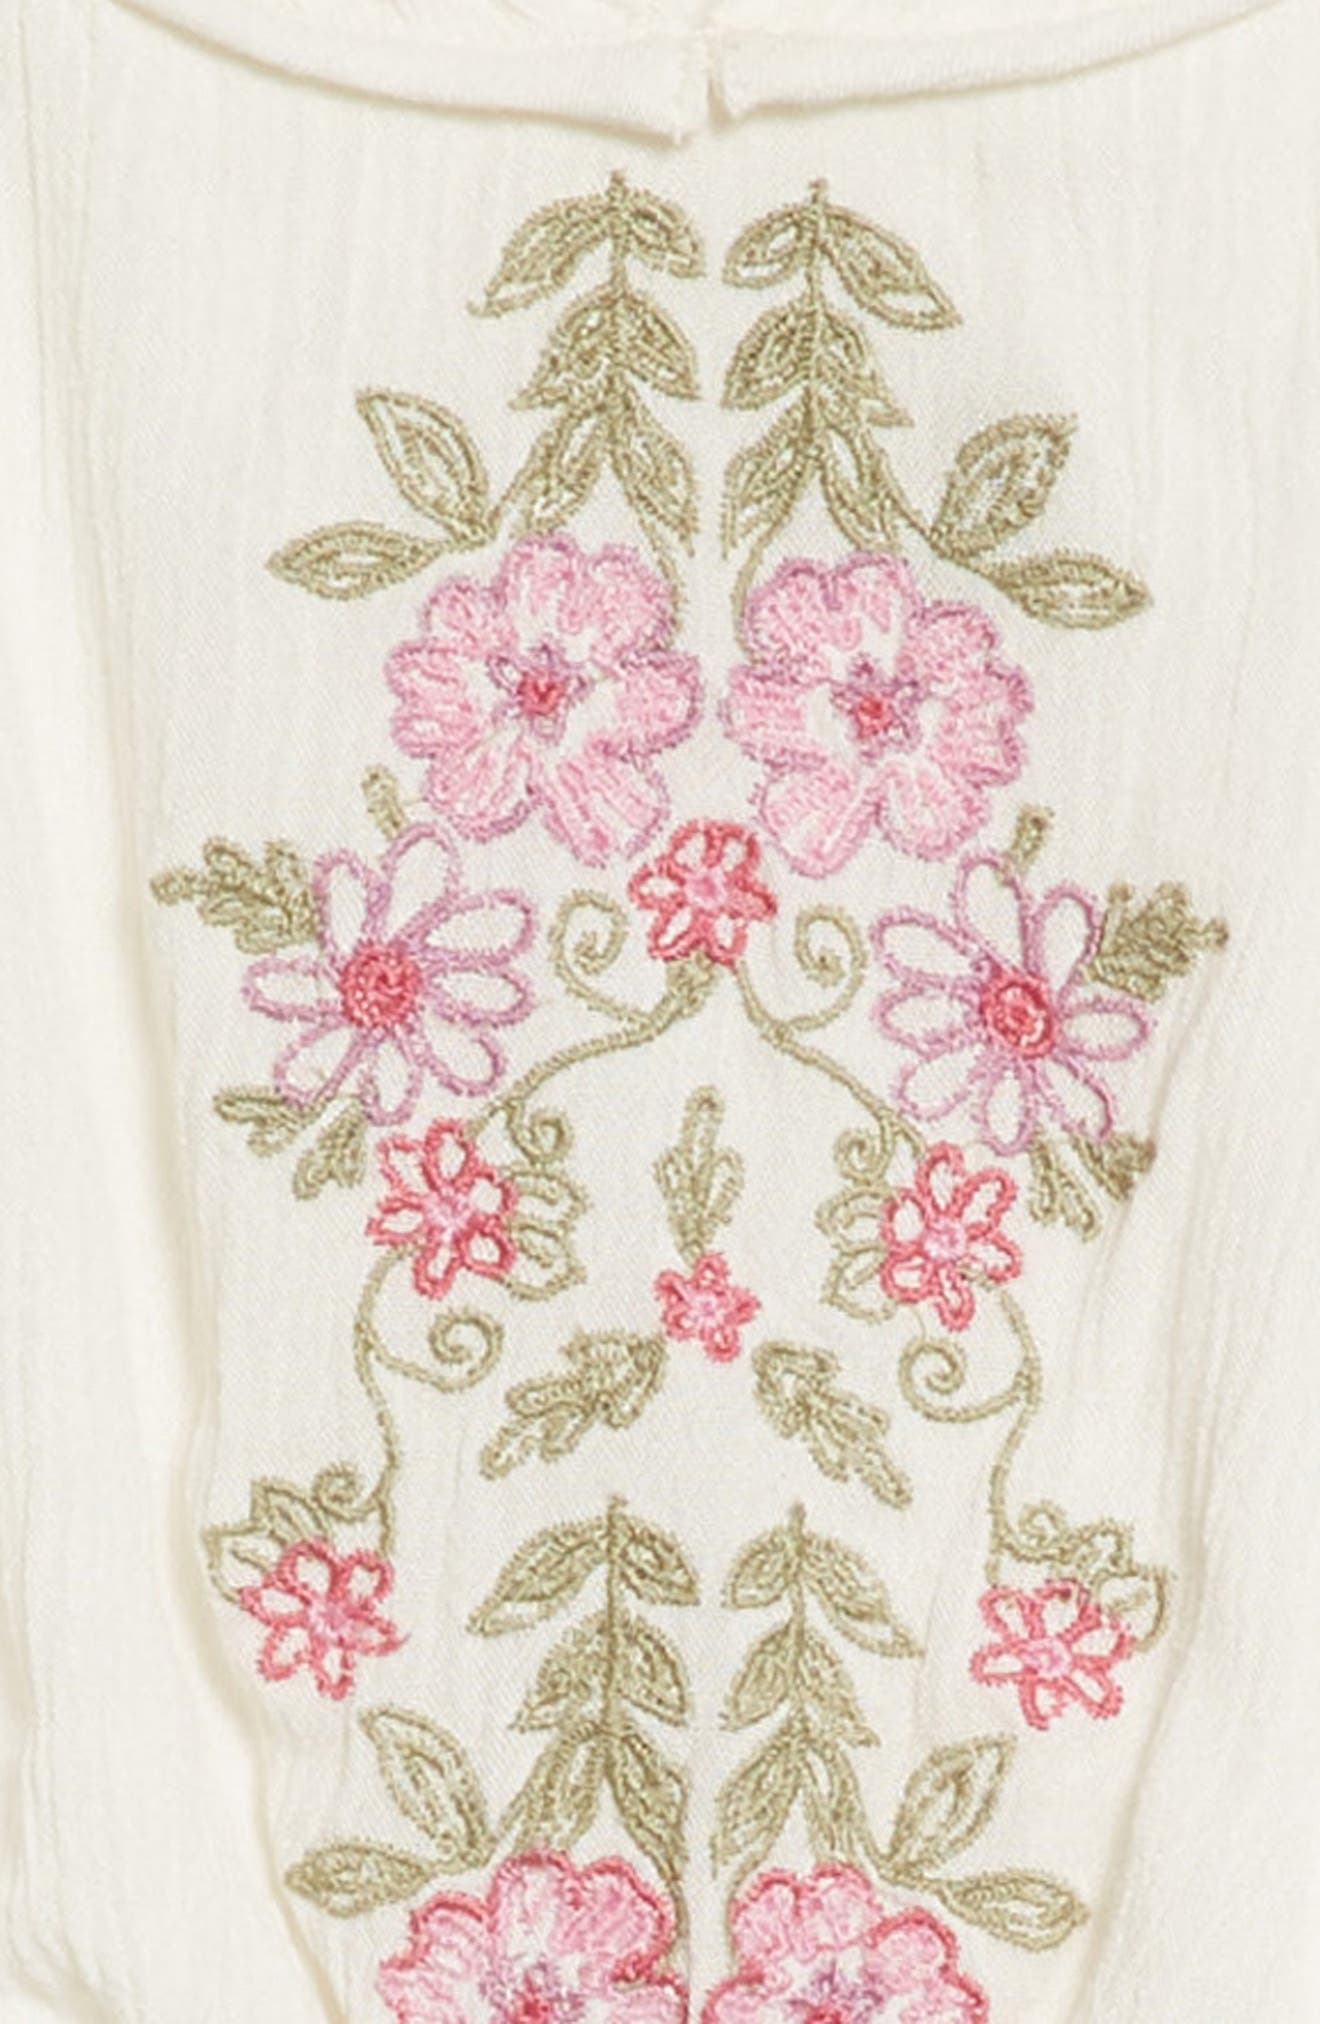 Malina Floral Embroidered Dress,                             Alternate thumbnail 4, color,                             White